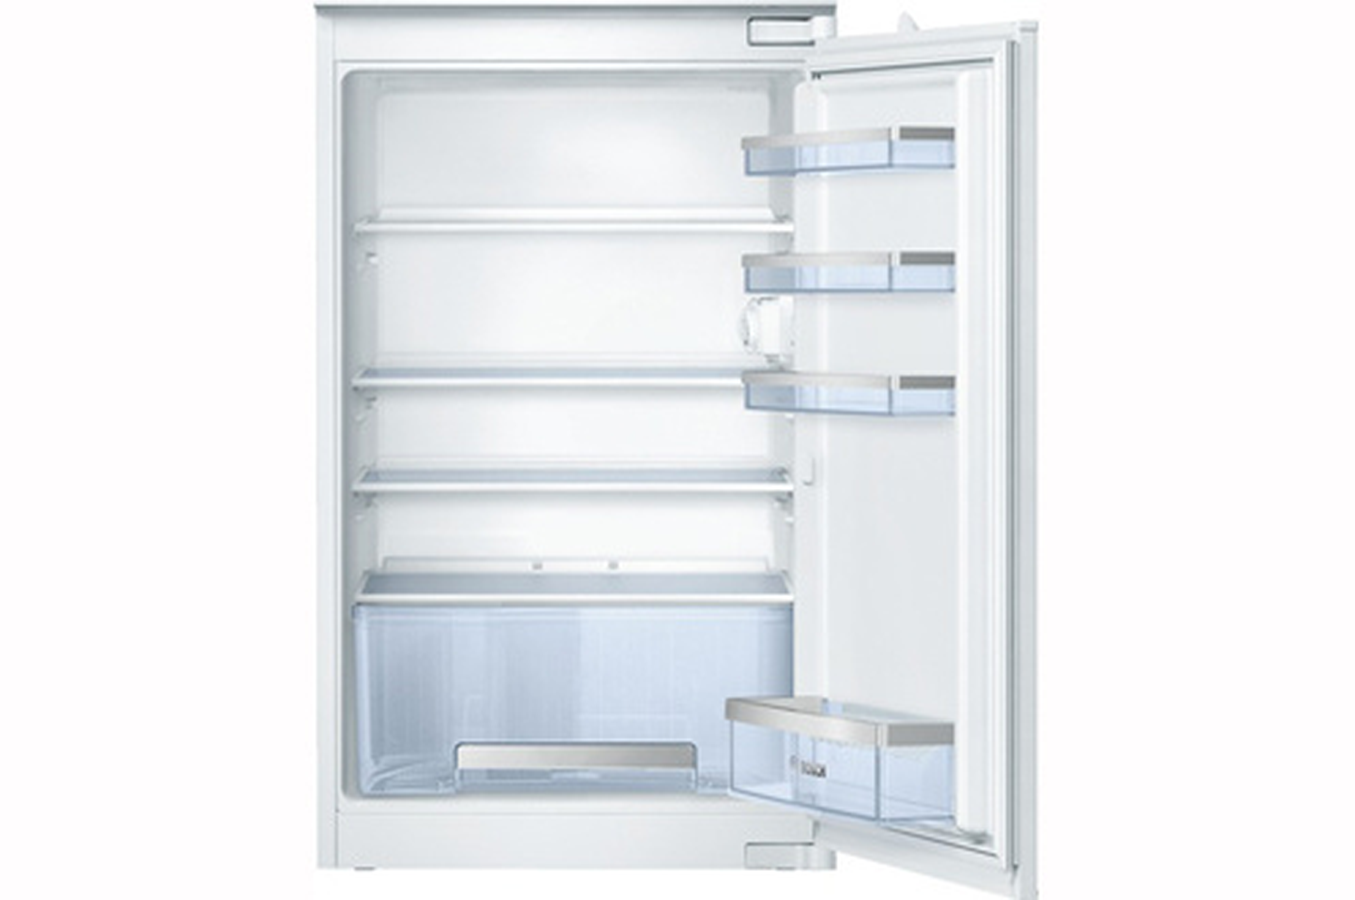 Refrigerateur top encastrable for Installer un frigo encastrable